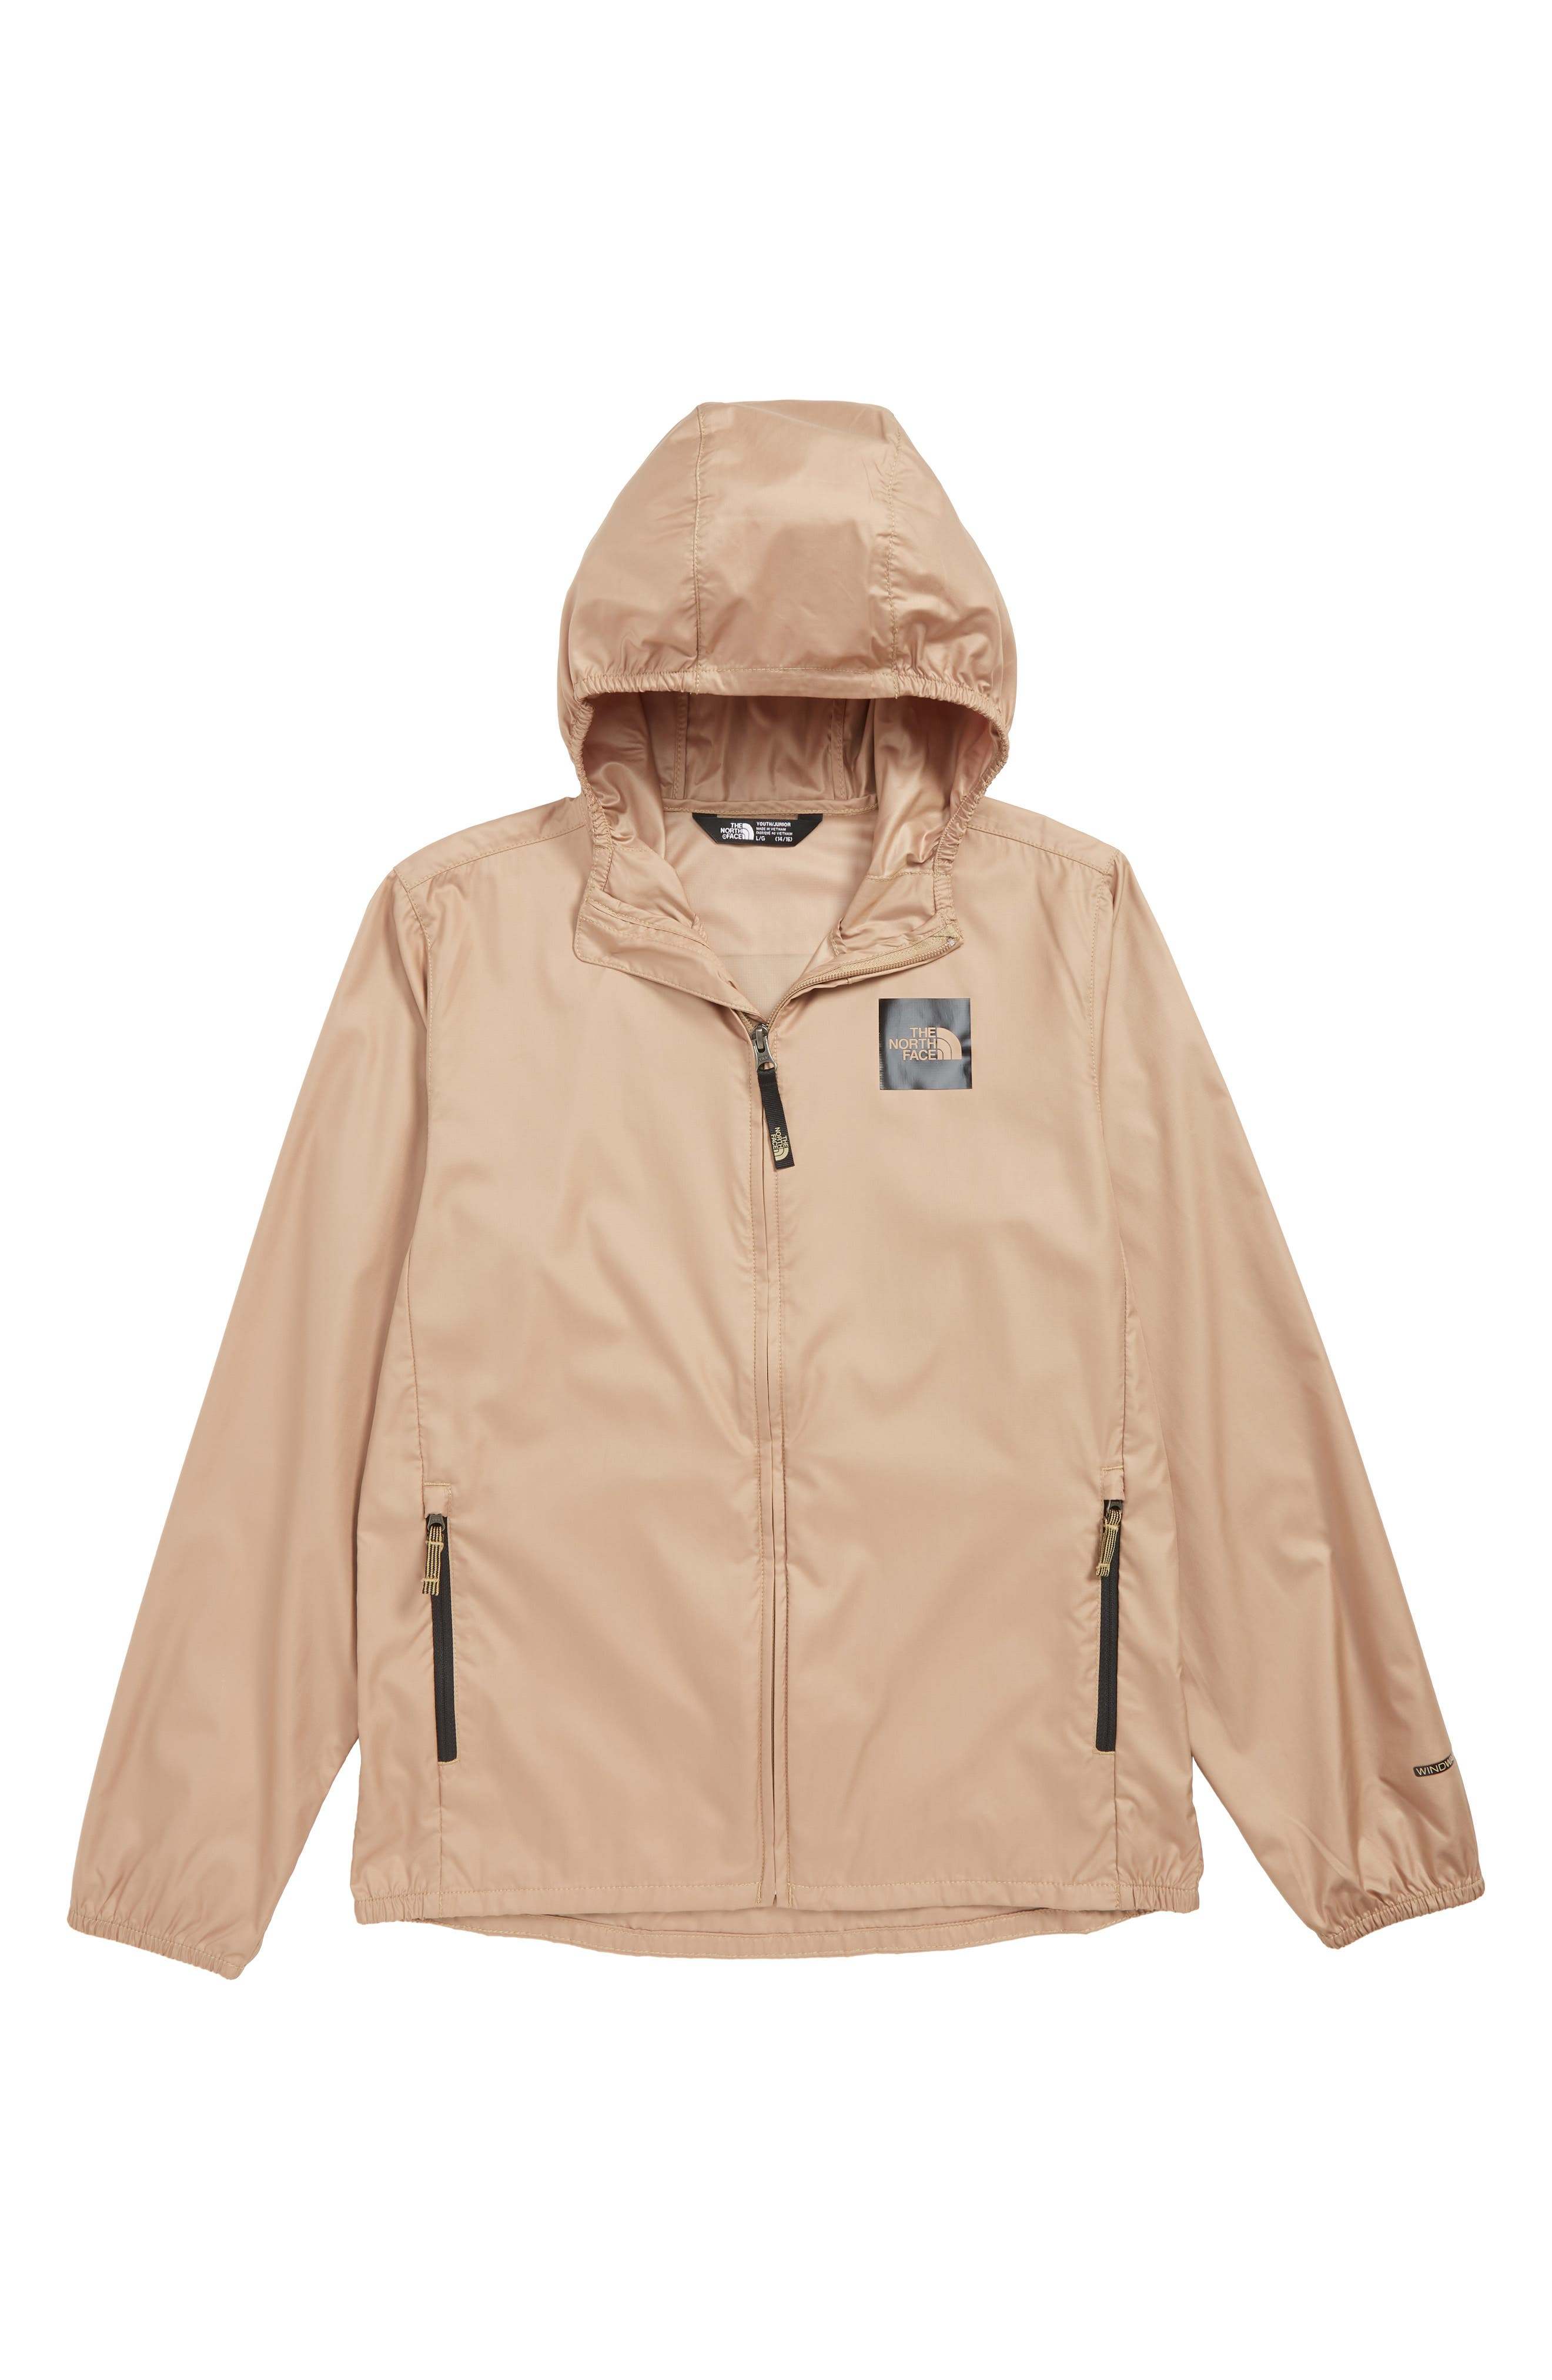 THE NORTH FACE, Flurry Water Repellent Hooded Windbreaker, Main thumbnail 1, color, KELP TAN